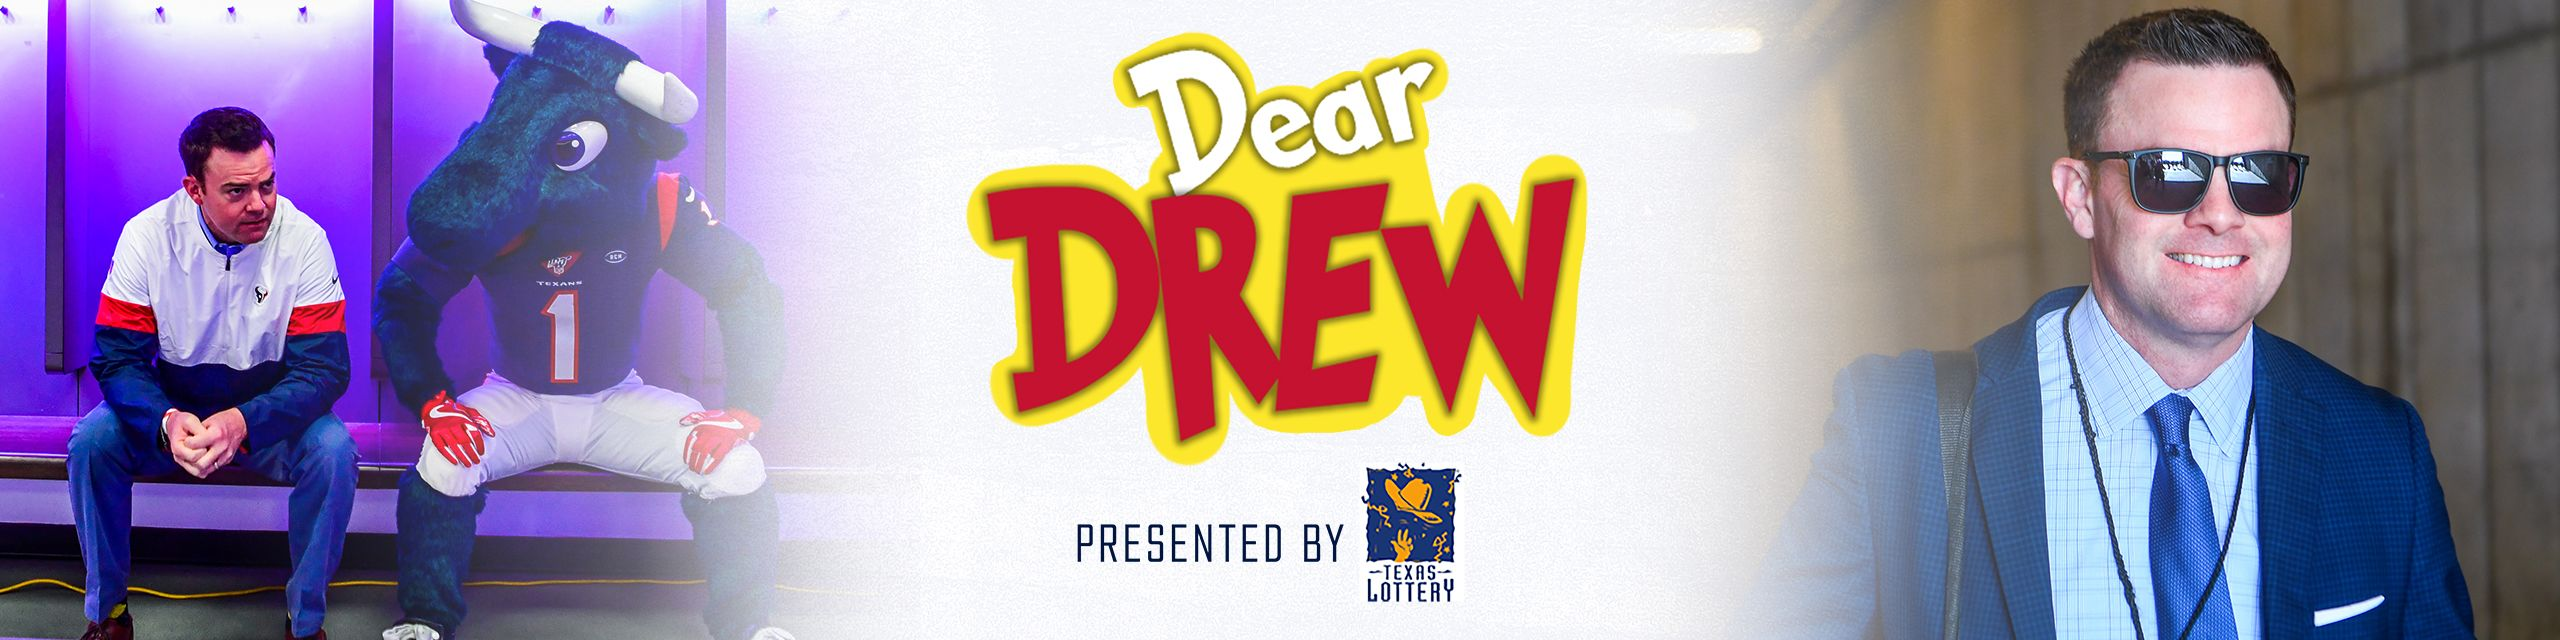 Dear Drew presented by Texas Lottery